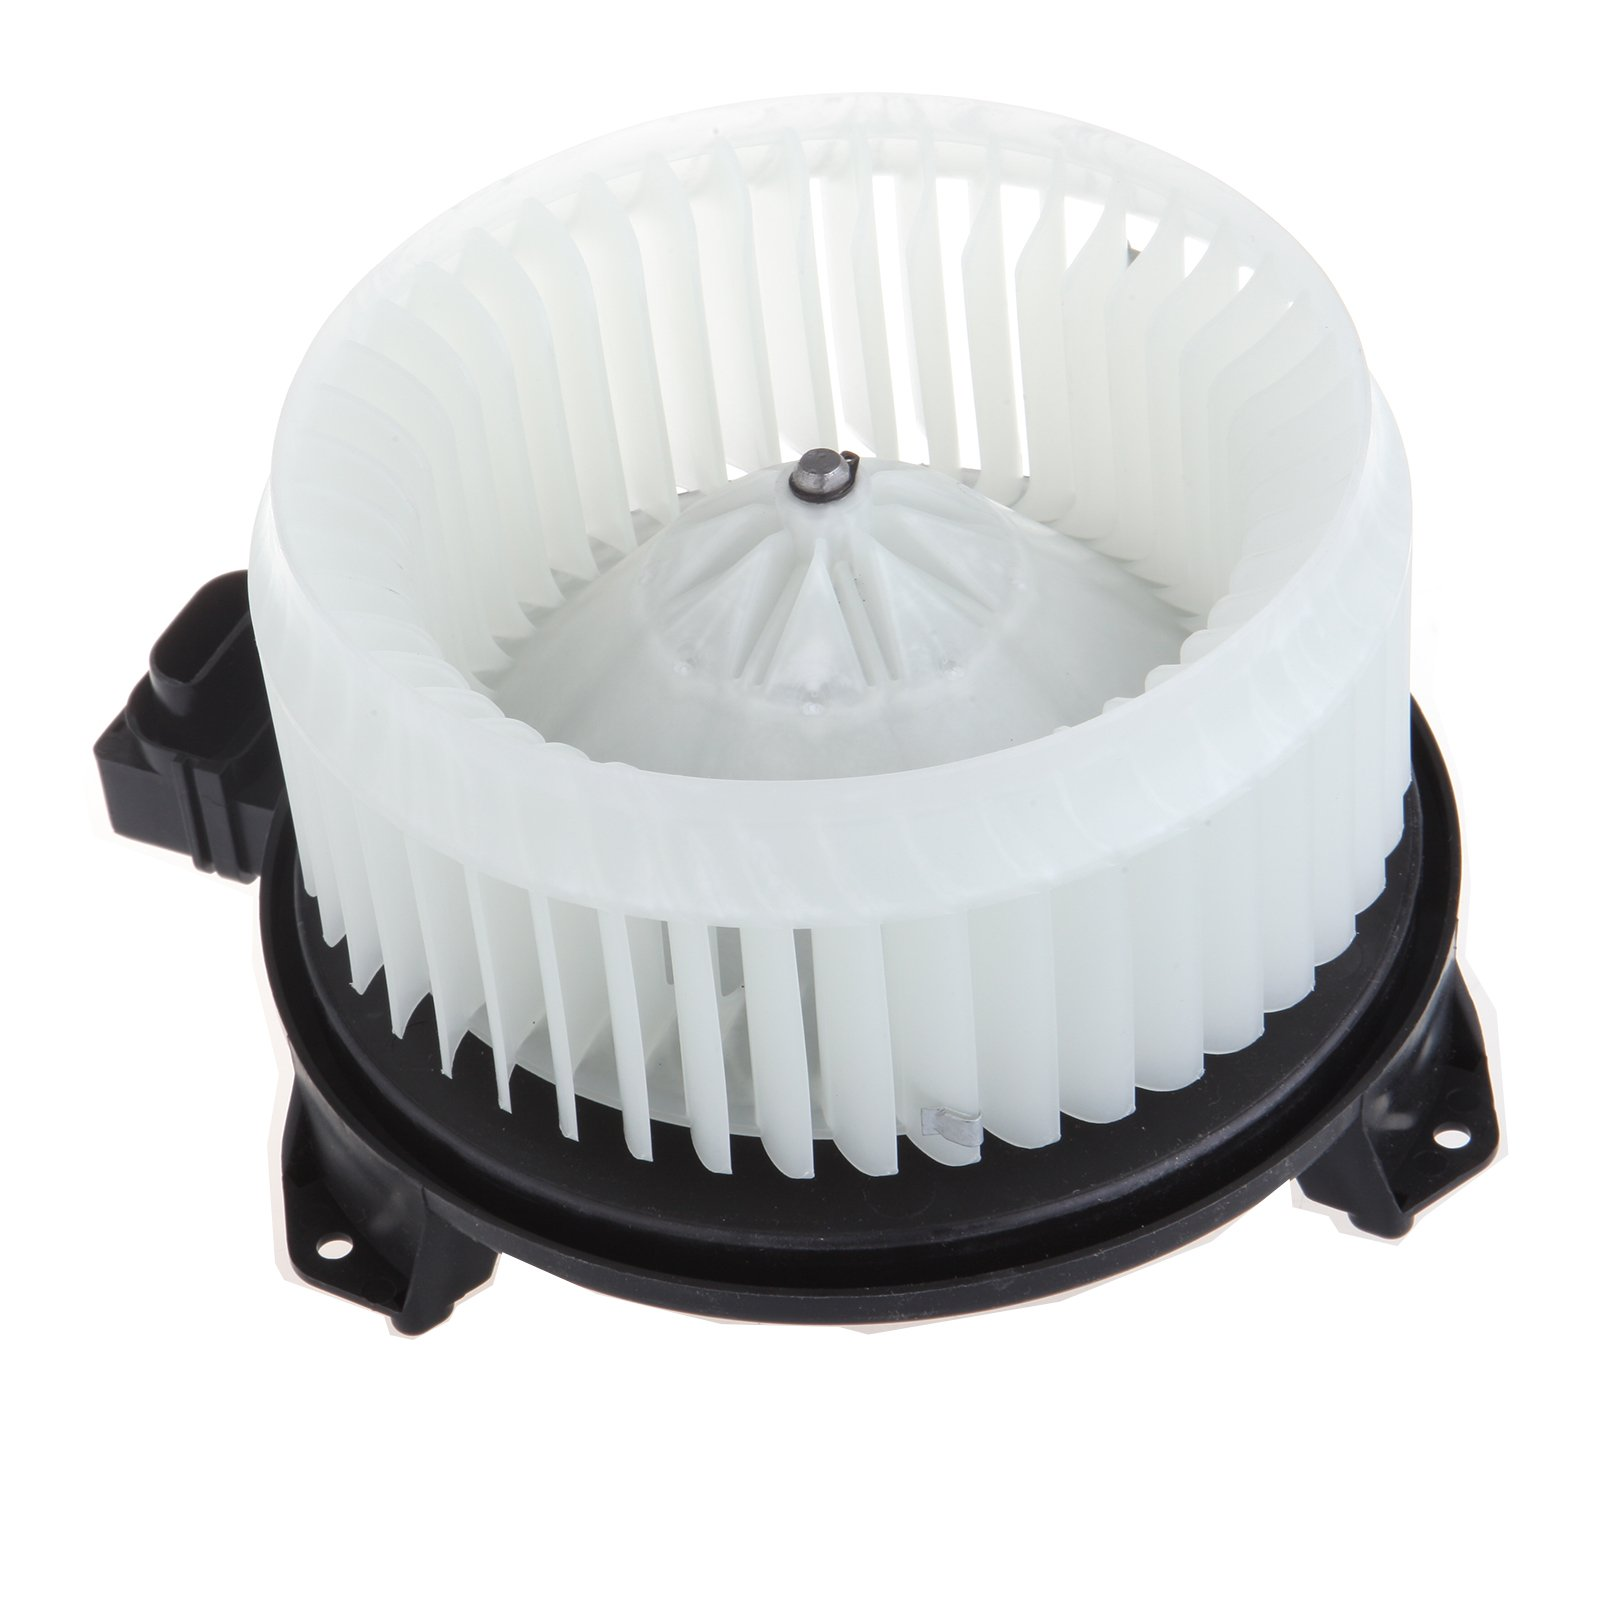 HVAC Plastic Heater Blower Motor ABS w/Fan Cage ECCPP for 2007-2013 Acura MDX/2007-2012 Acura RDX/2009-2013 Acura TL/TSX